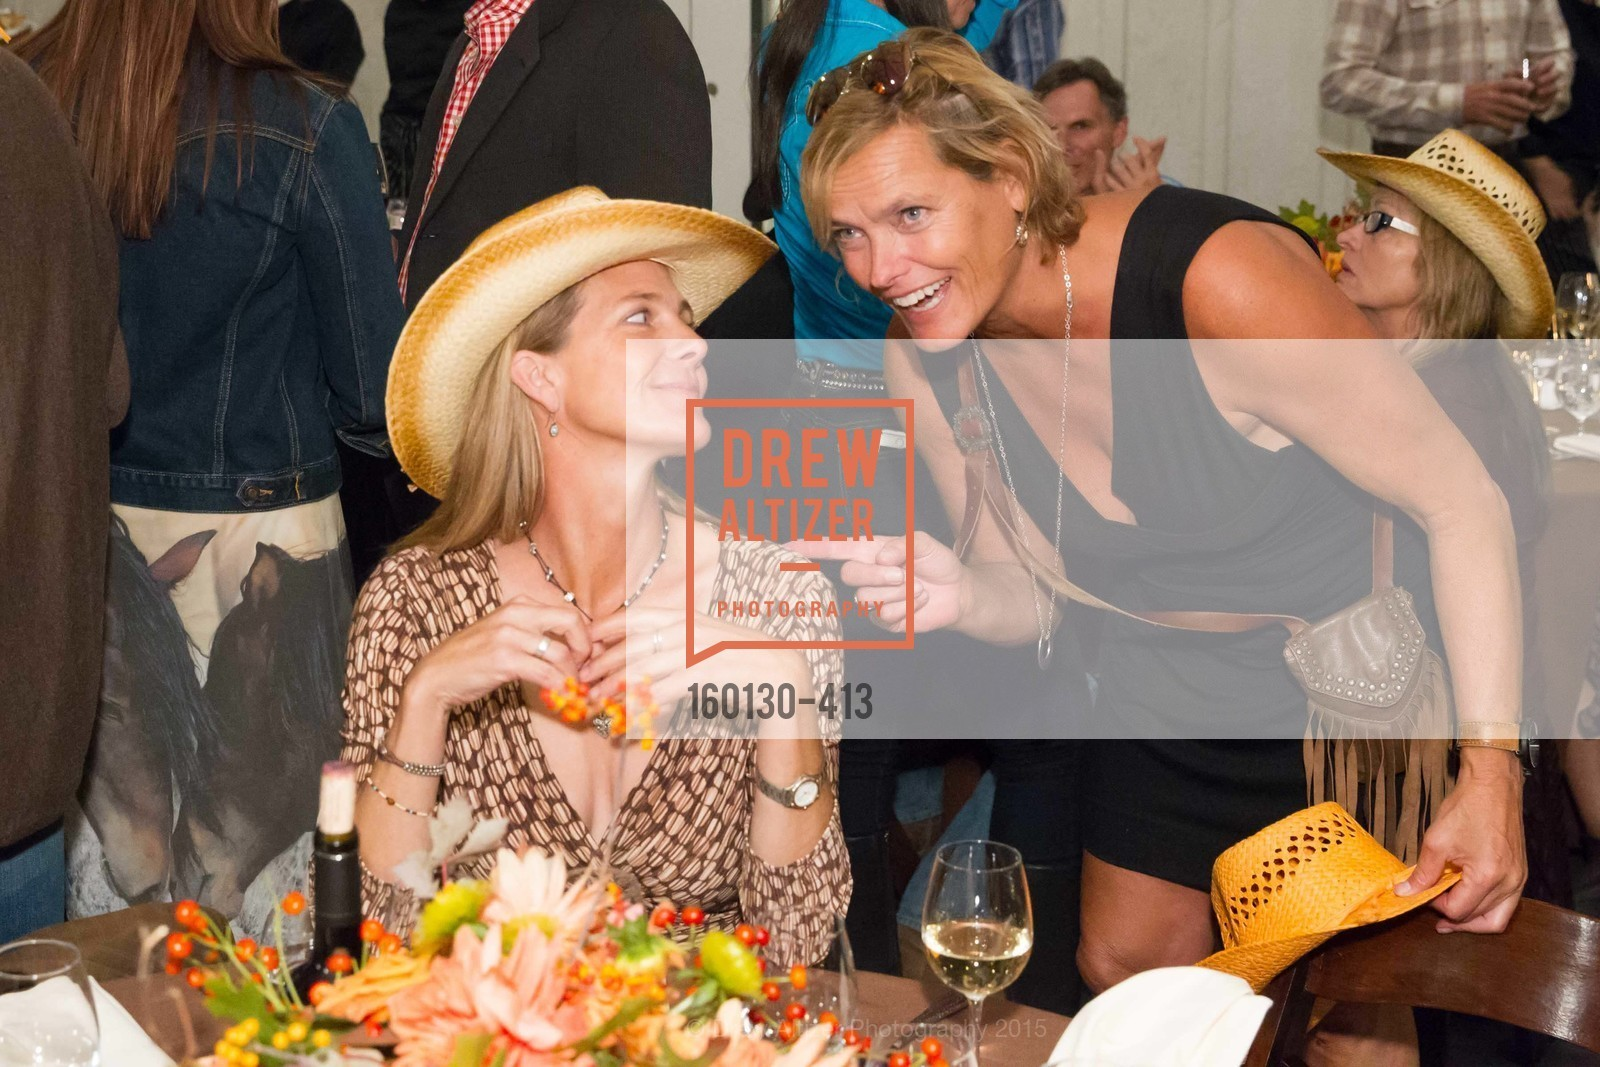 Michelle Rogers, Karen McFarland, A Harvest Barn Dance at Cornerstone Presented By Giant Steps Therapeutic Equestrian Center, Cornerstone Sonoma. 23570 Arnold Dr, October 24th, 2015,Drew Altizer, Drew Altizer Photography, full-service agency, private events, San Francisco photographer, photographer california